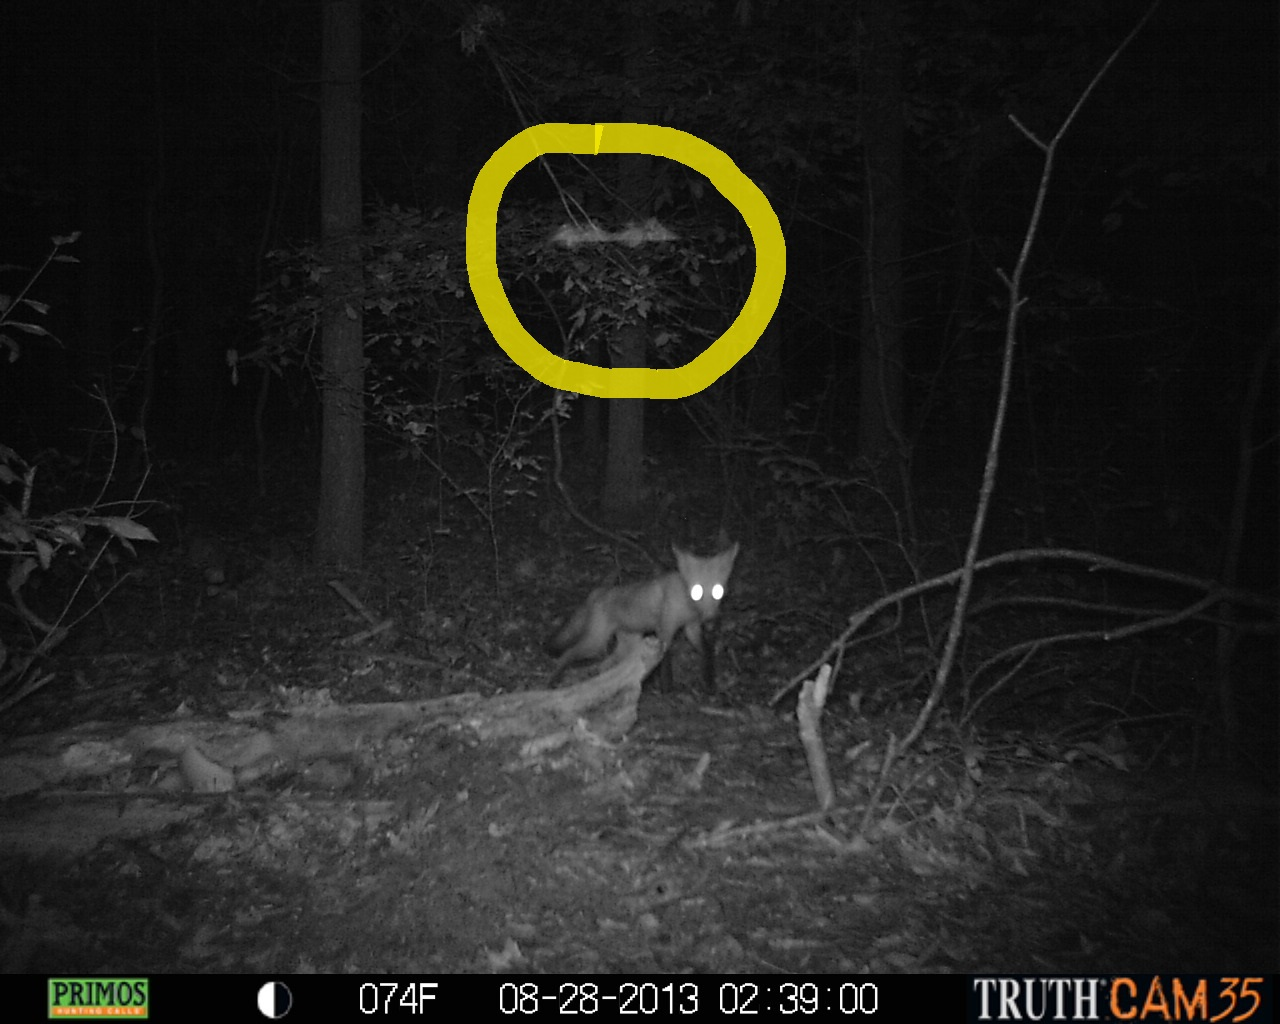 Plants Amaze Me: What's on the trail? Trail Camera Mystery! Scary Deer Cam Pictures